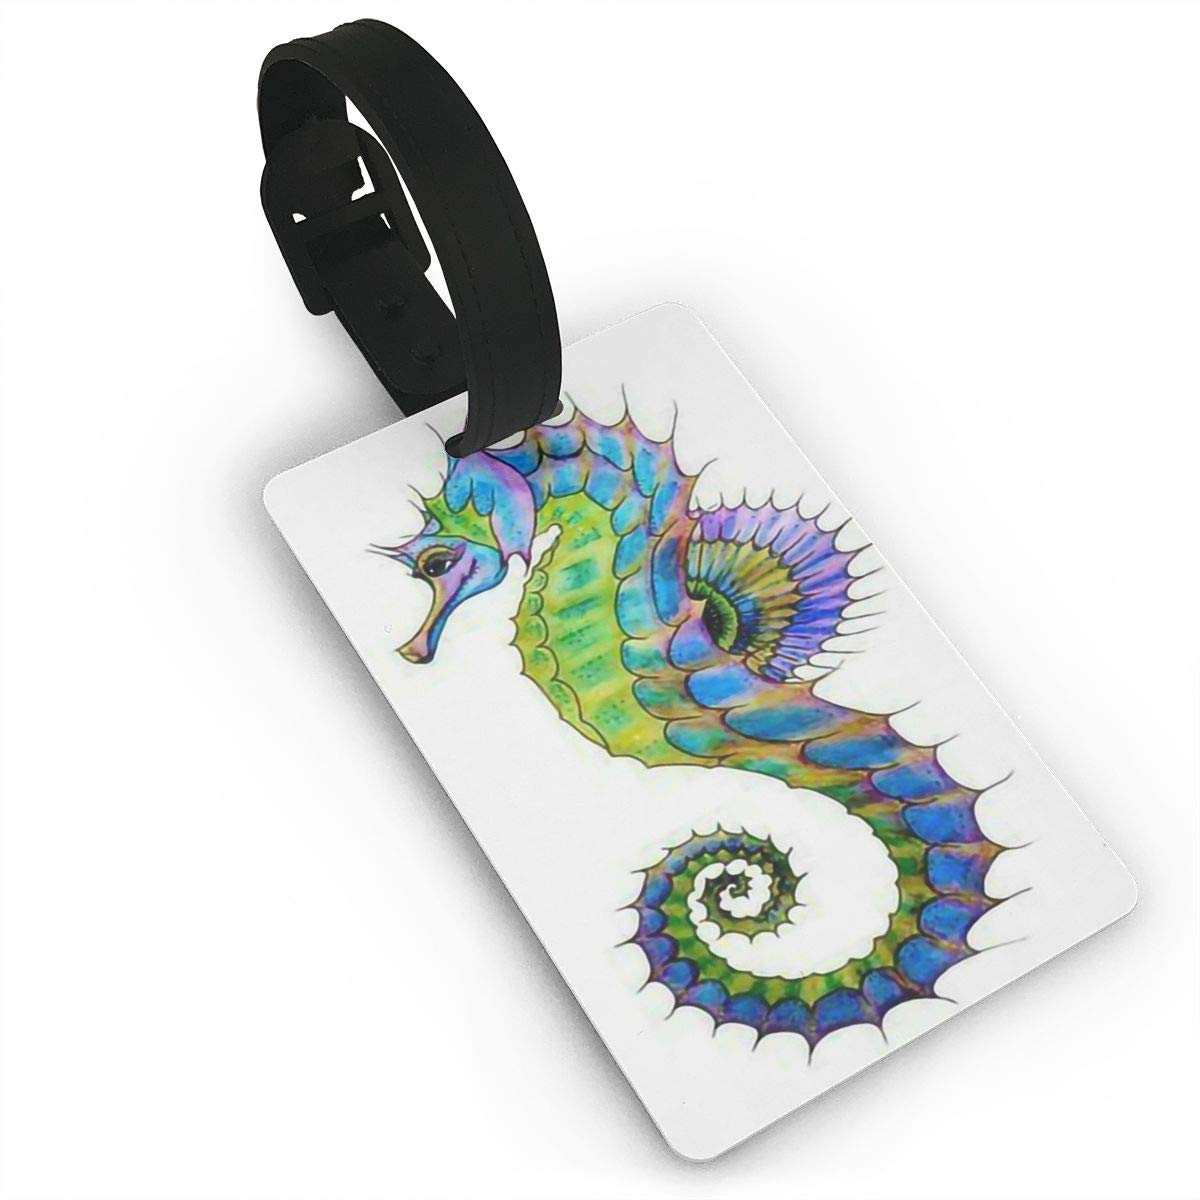 Sea Horse Baggage Tag For Travel Bag Suitcase Accessories 2 Pack Luggage Tags